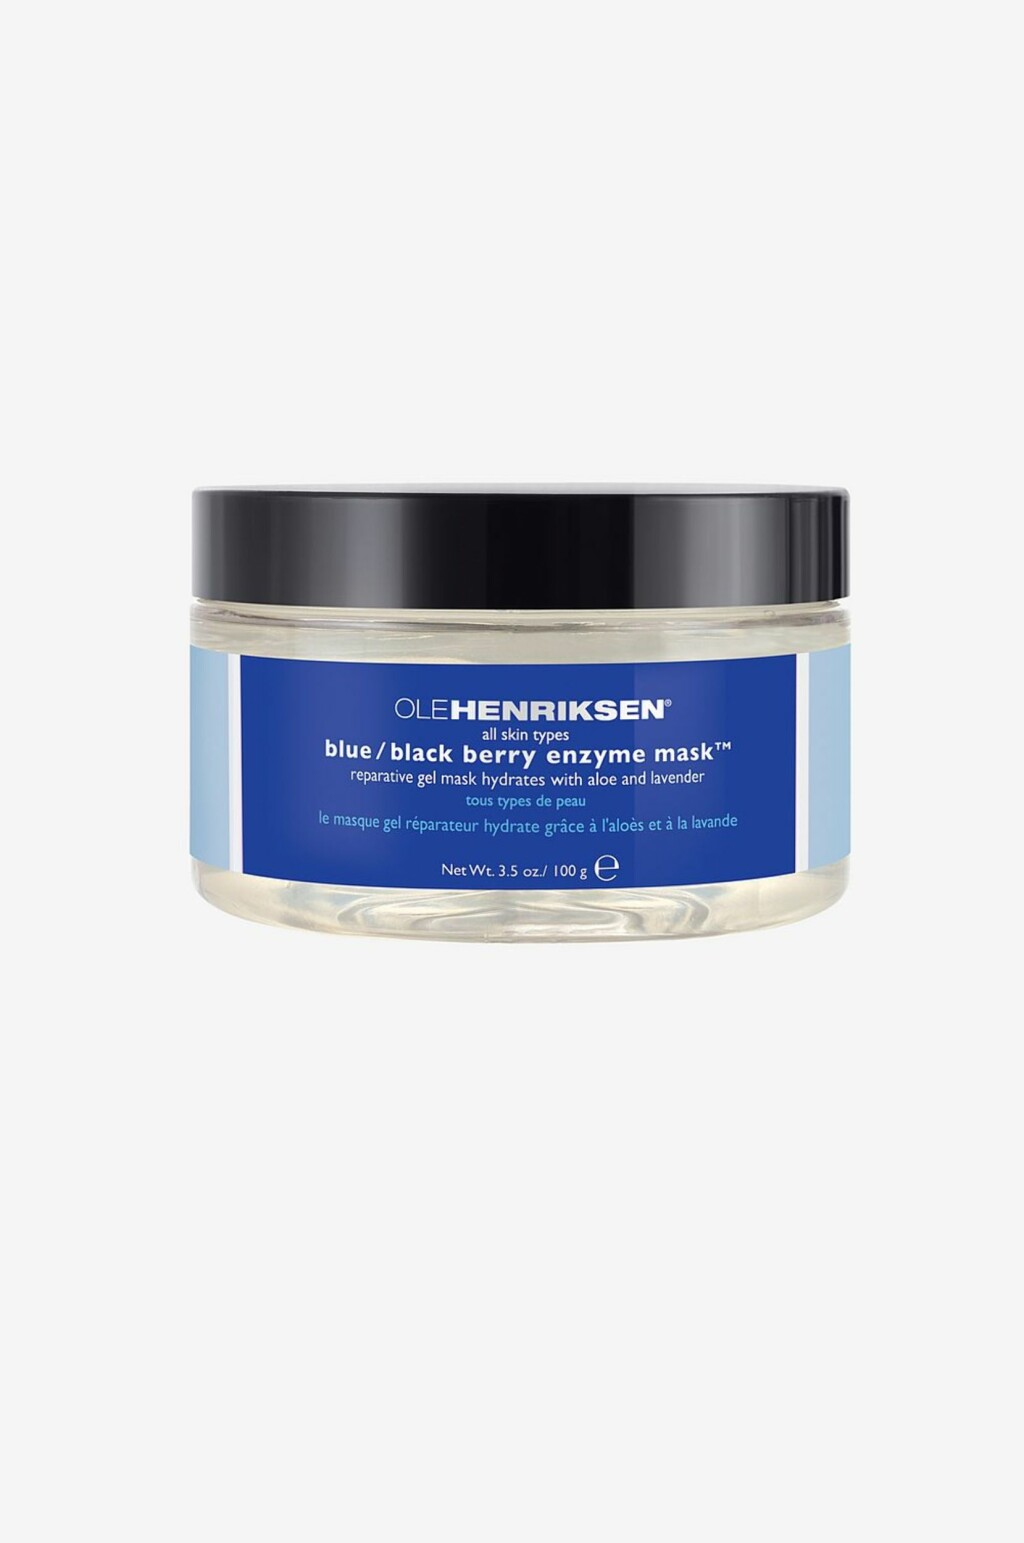 Ole Henriksen Blue/Black Berry mask roer ned tørr og sensitiv hud |kr 448